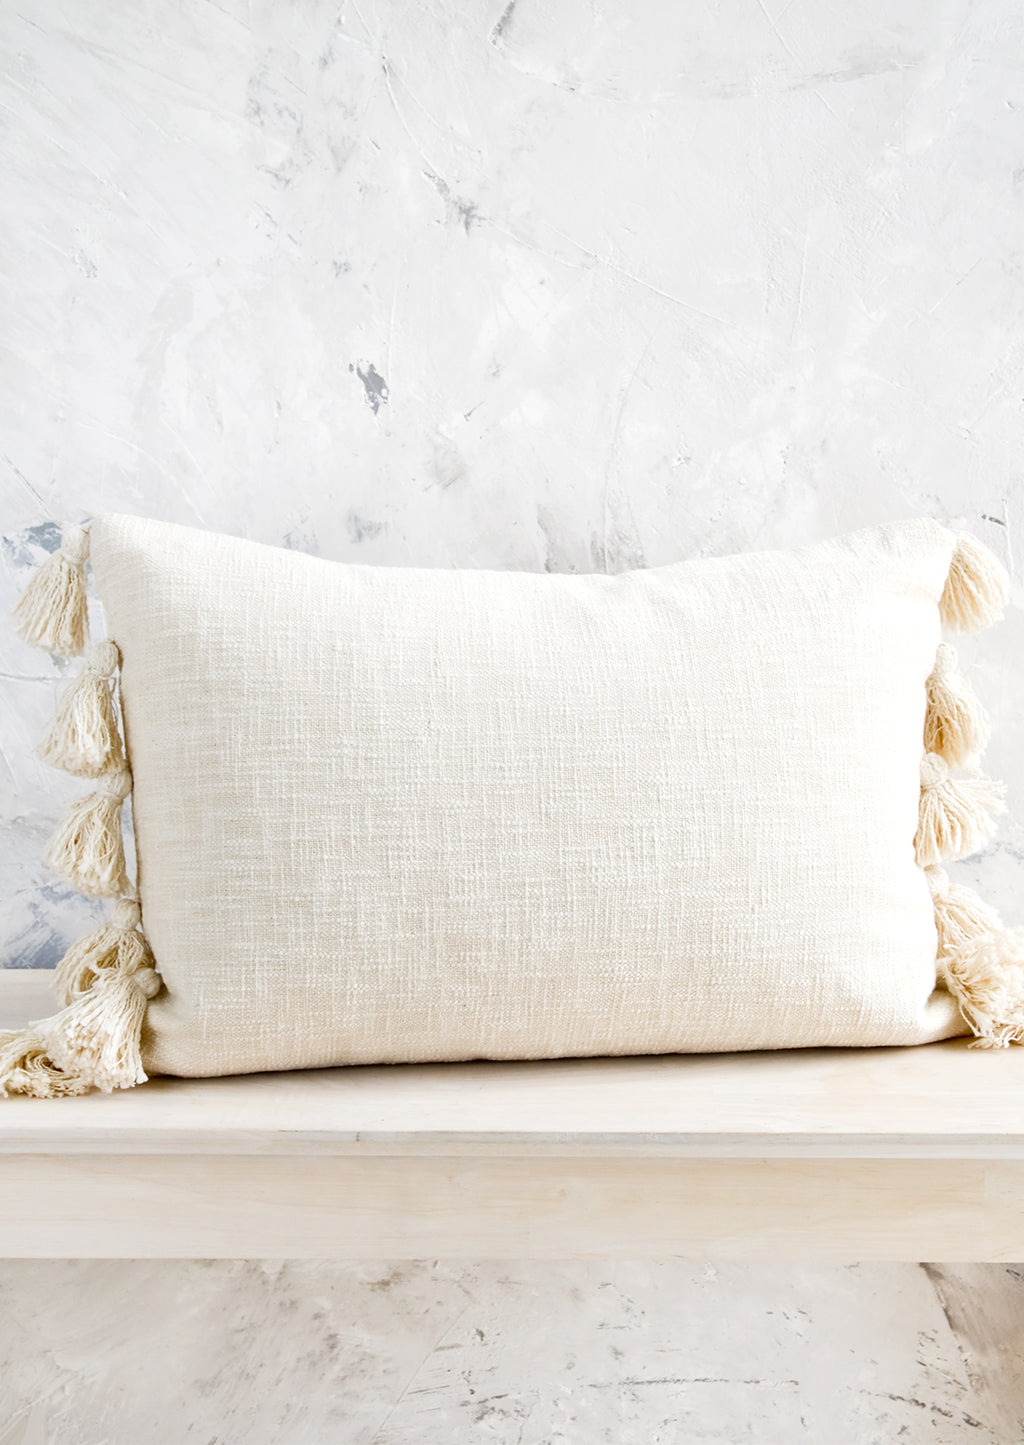 1: Lumbar throw pillow in textured, cream colored cotton with large decorative tassels at sides.